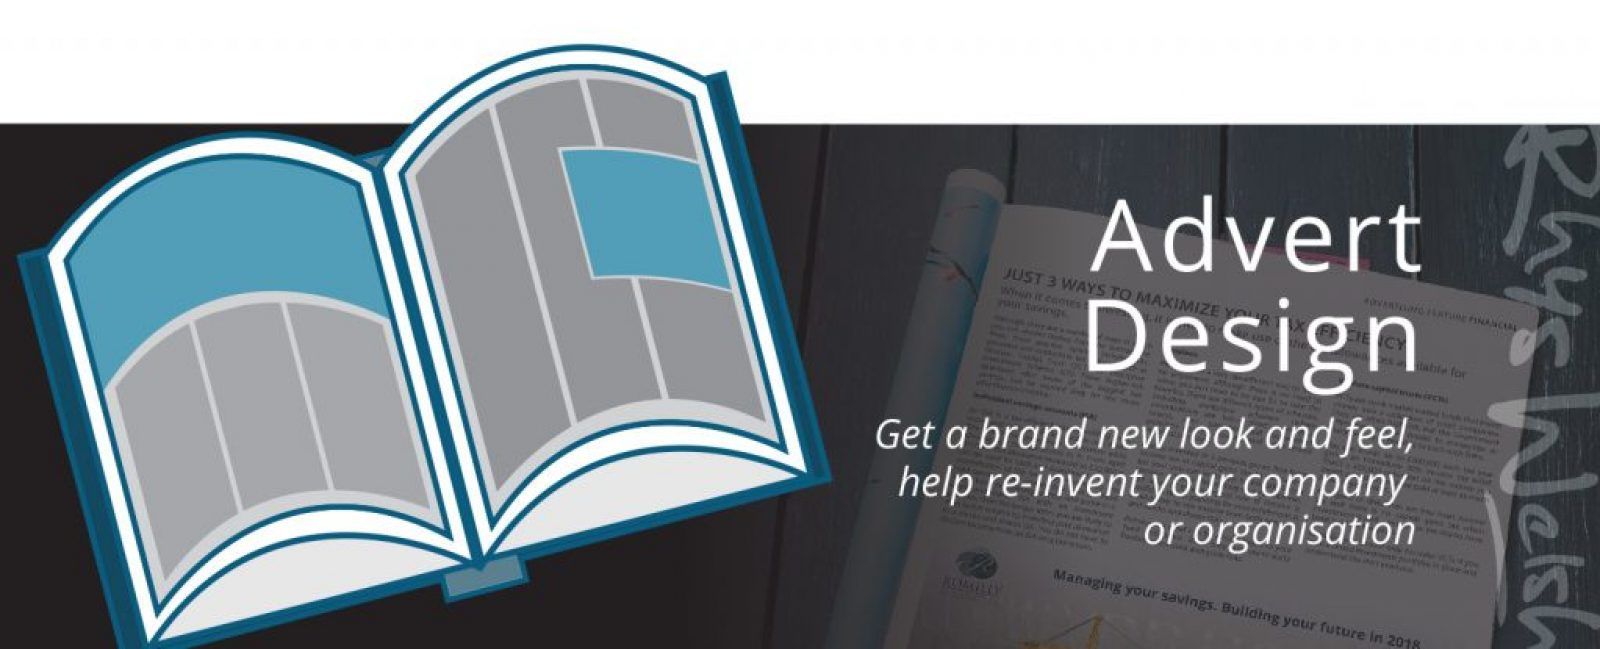 Advert-Design-Graphic-for-websites-cardiff